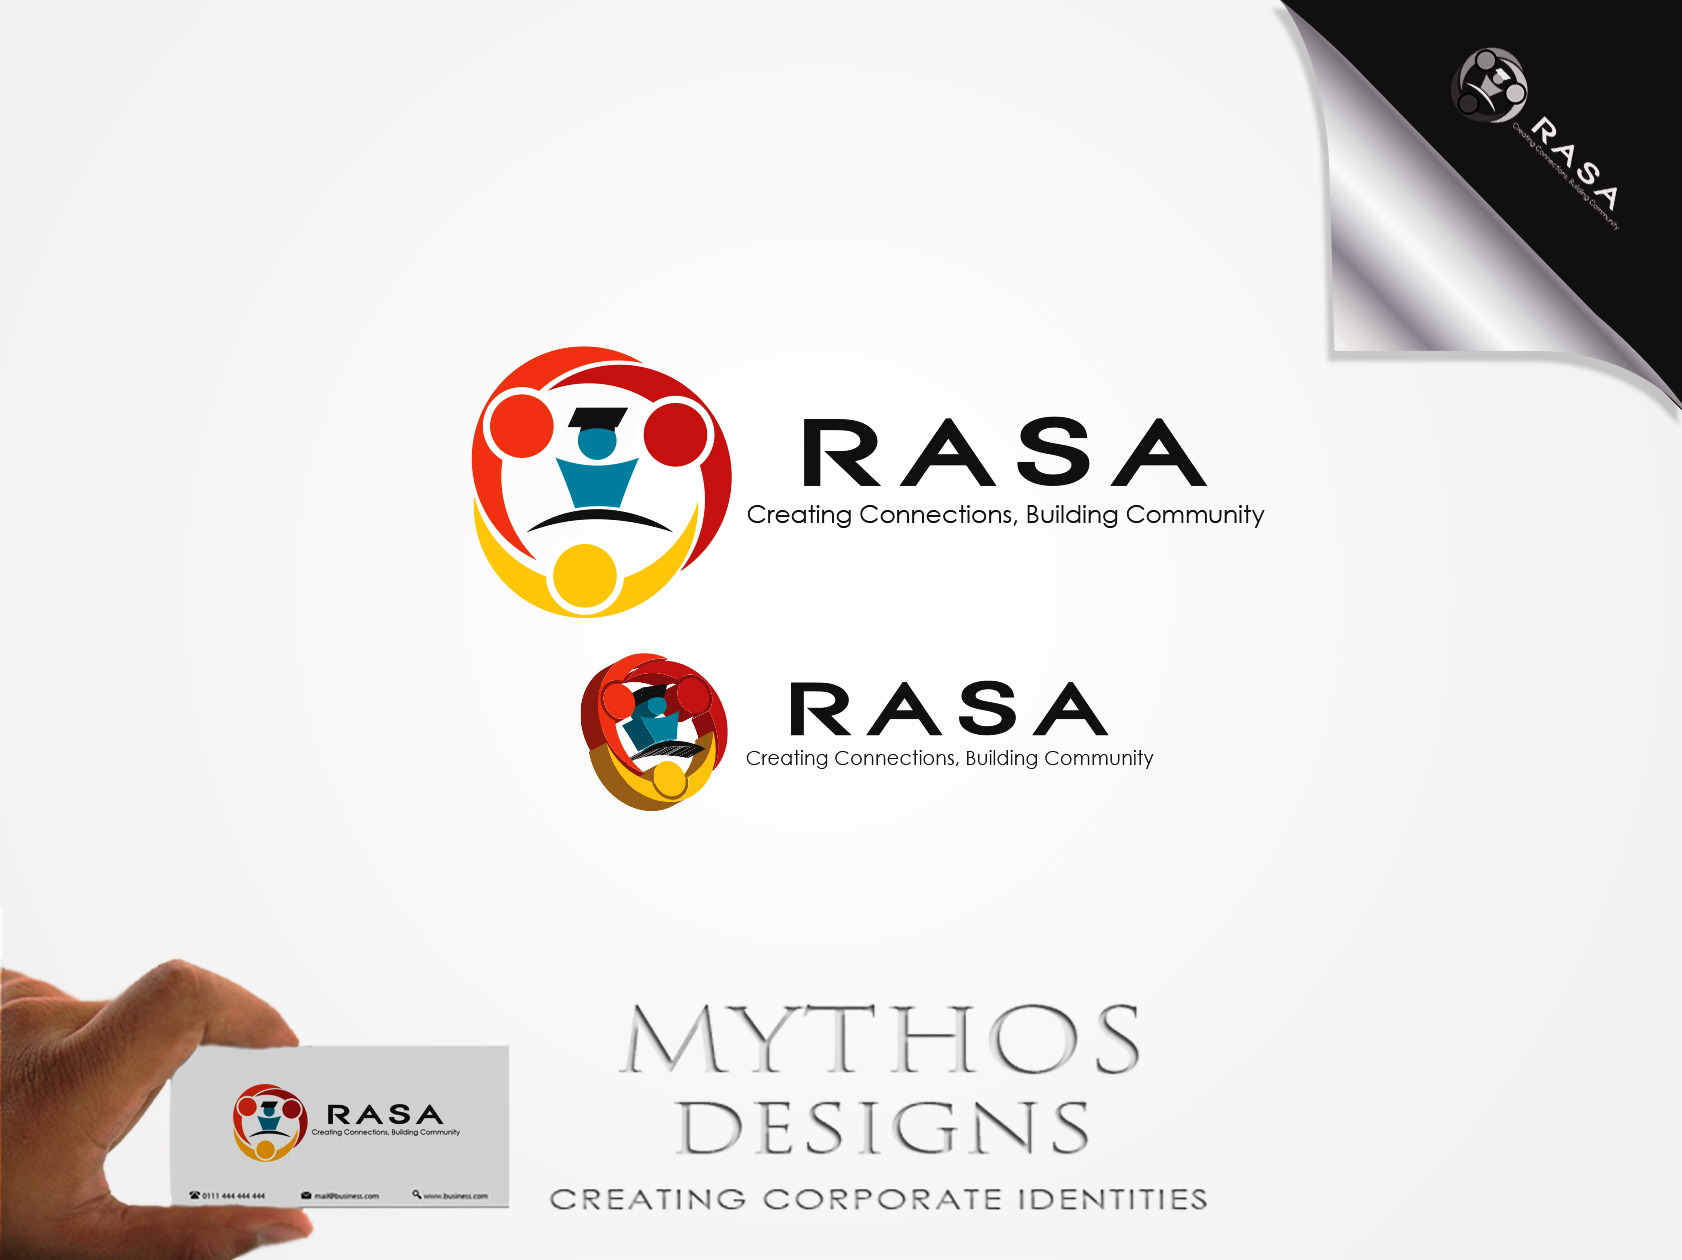 Logo Design by Mythos Designs - Entry No. 50 in the Logo Design Contest New Logo Design for RASA - Richmond Association of School Administrato.